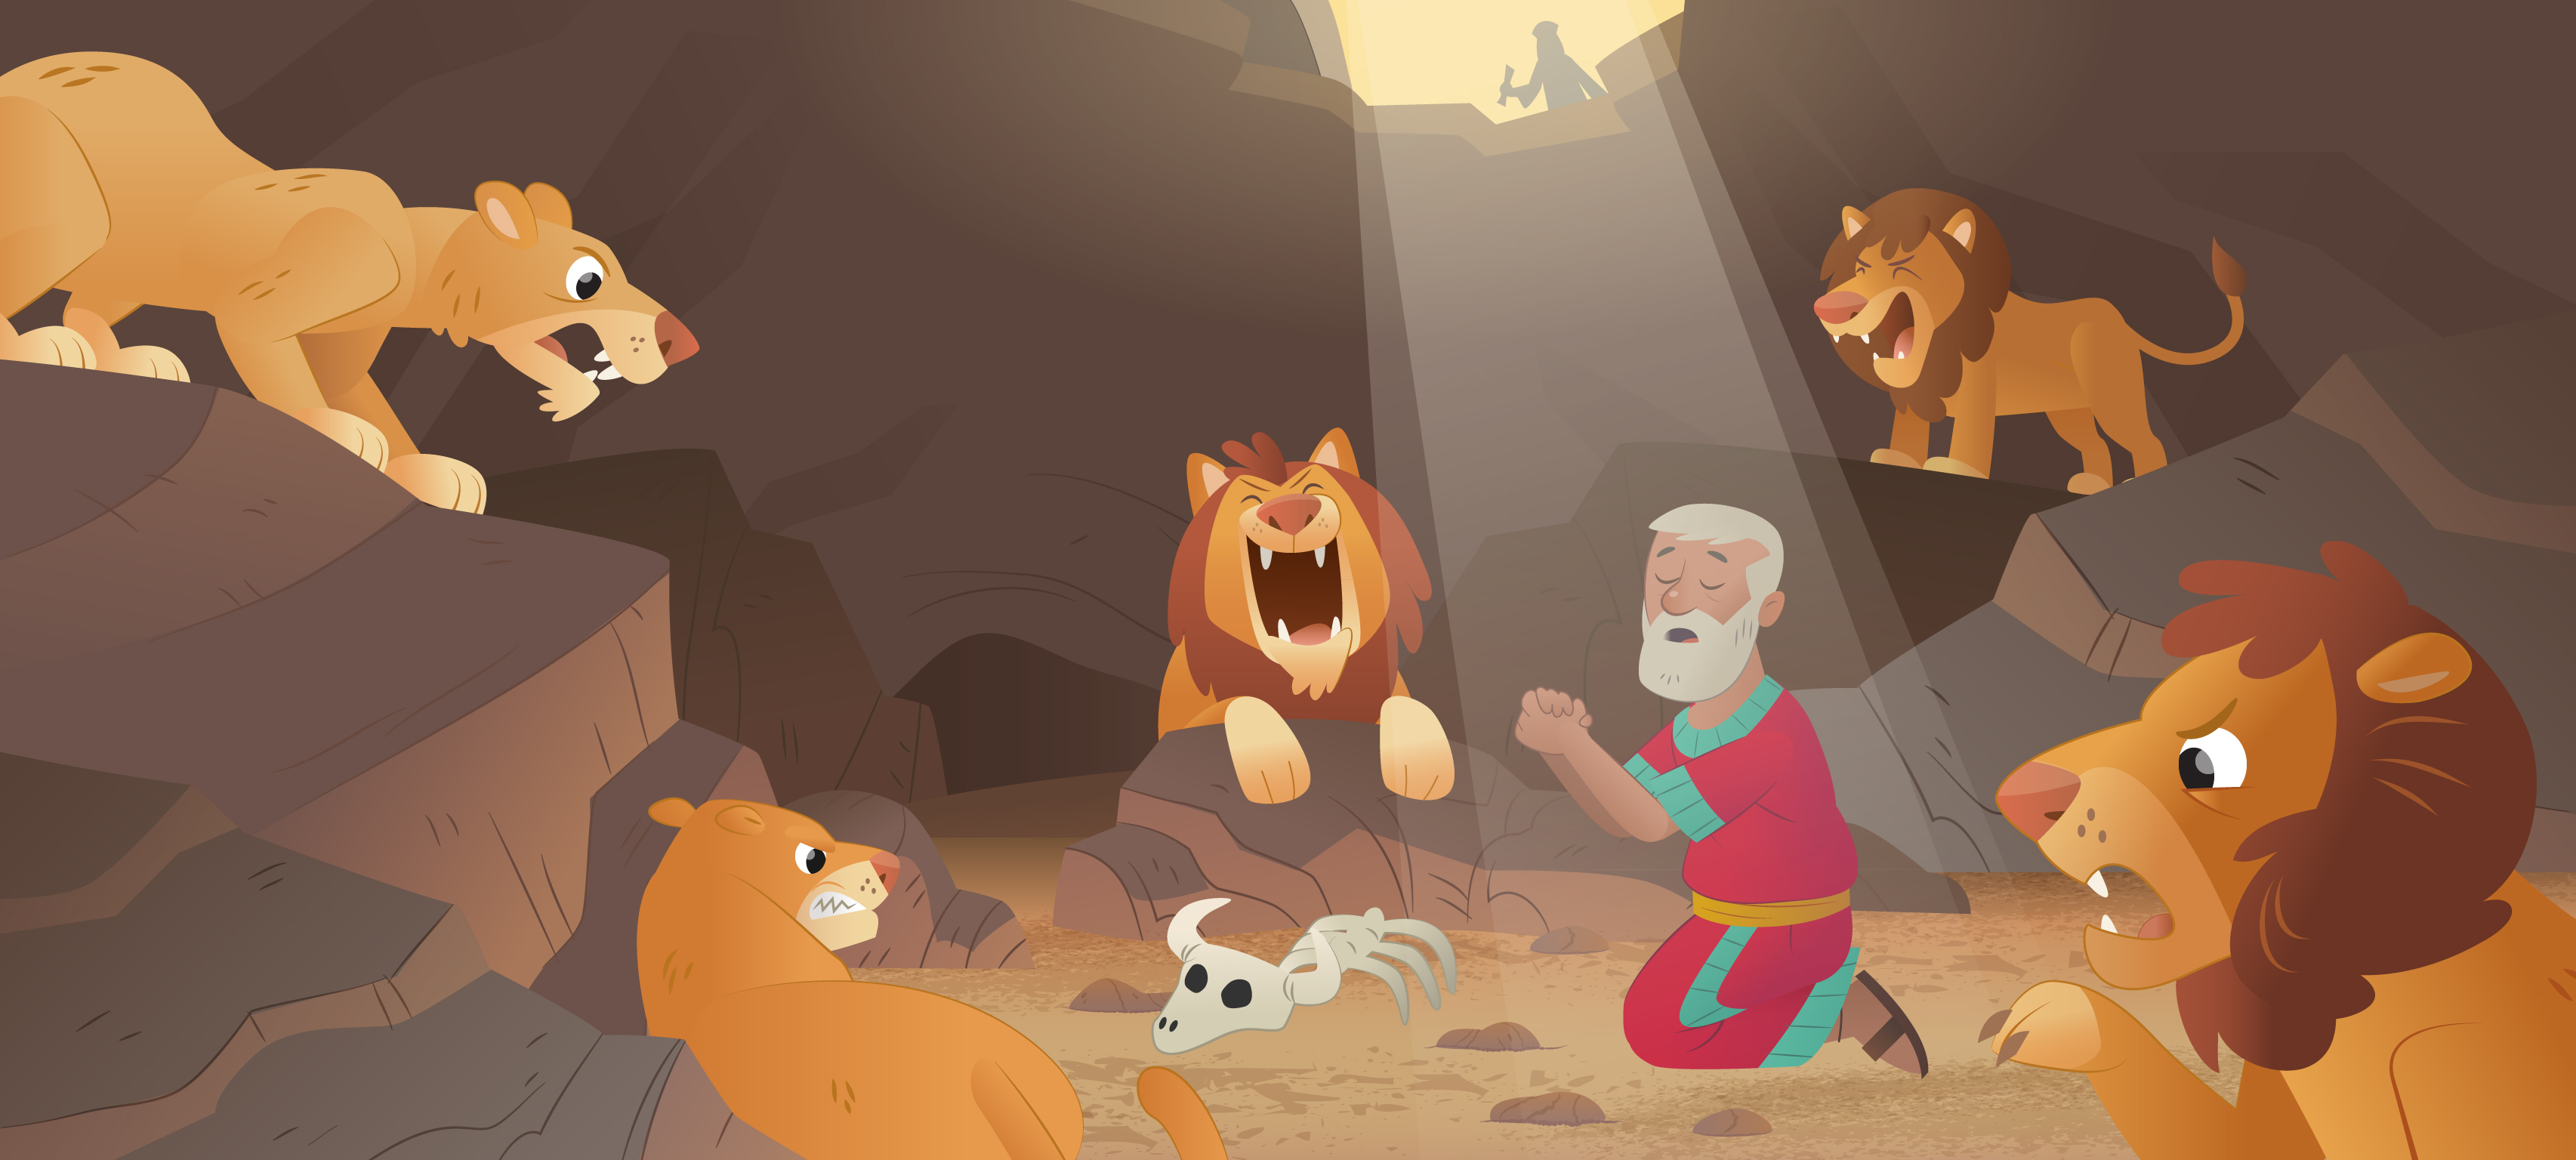 New Bible App For Kids Story Daniel In The Lions Den A